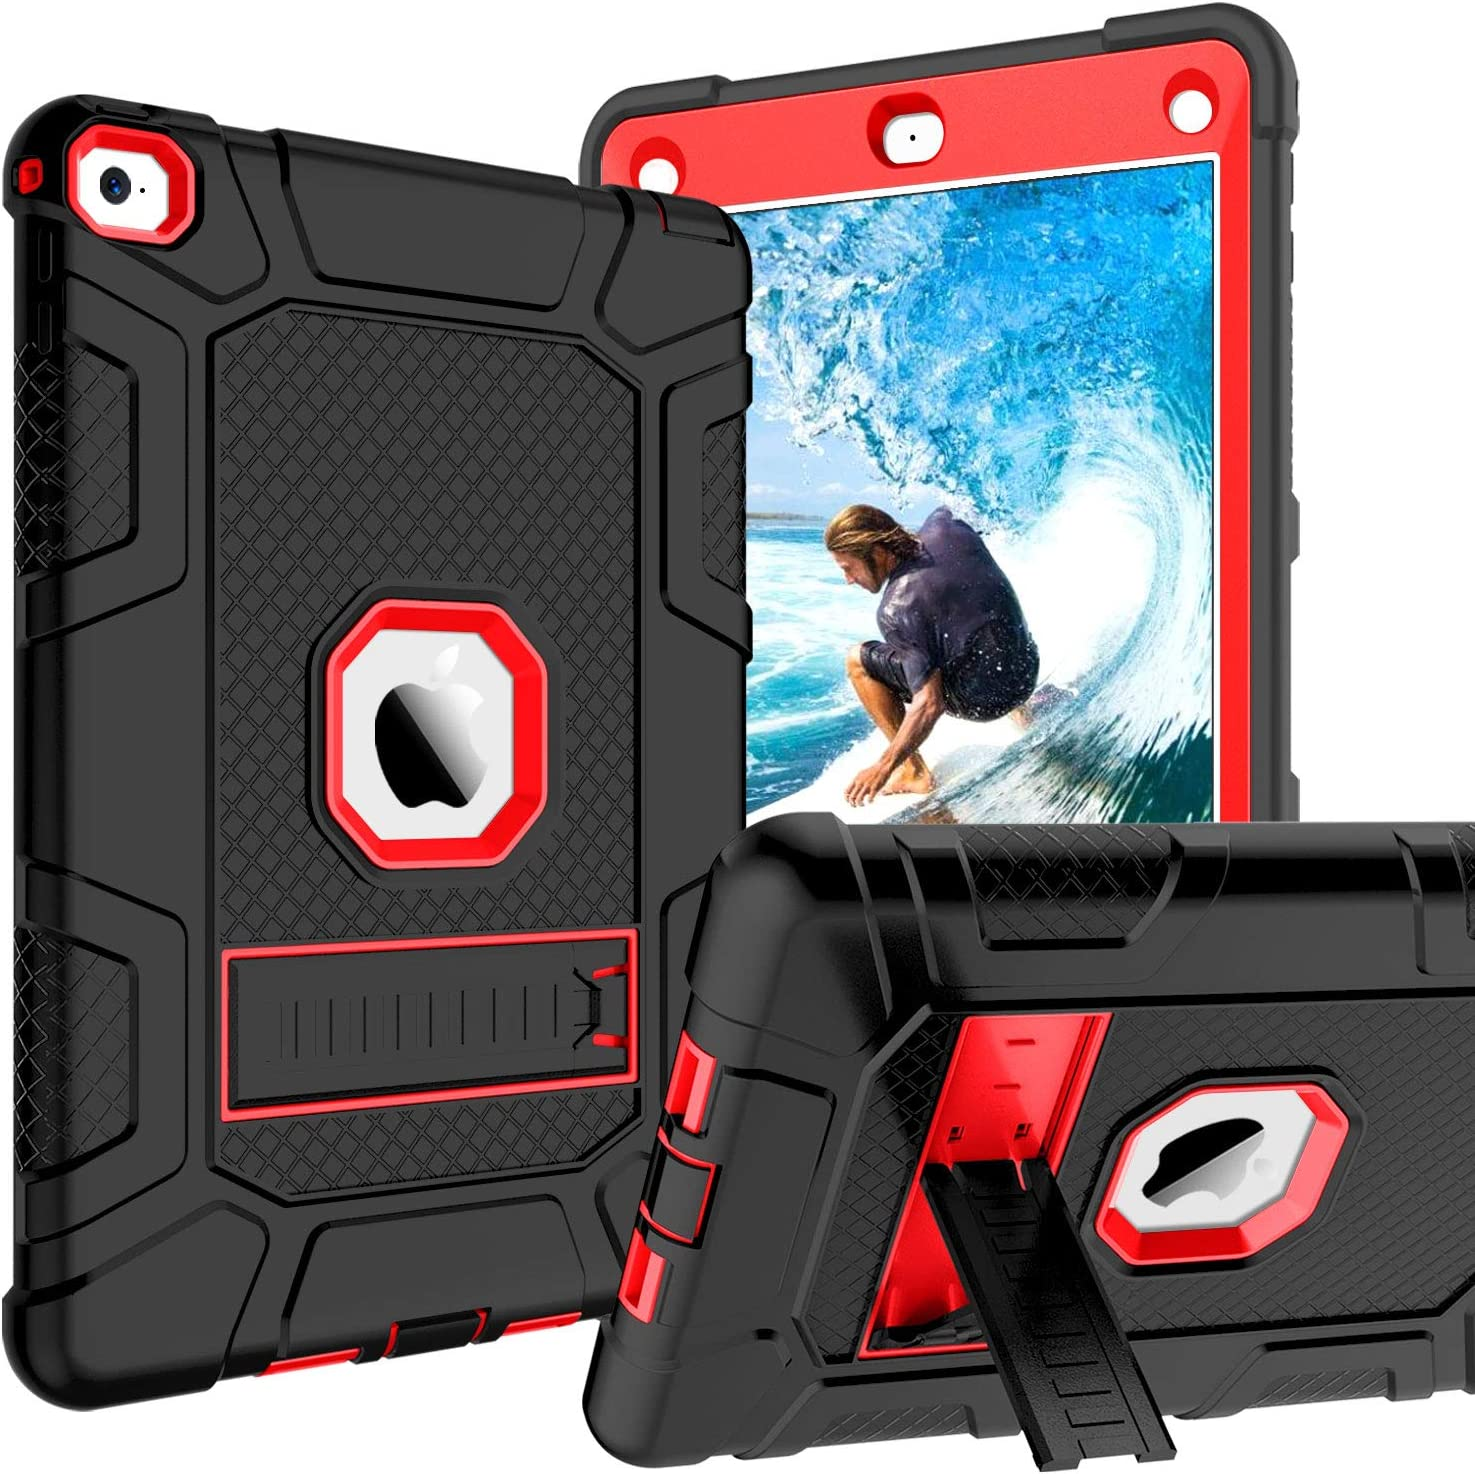 GUAGUA iPad Air 2 Cases Kickstand 3 in 1 High Impact Rugged Heavy Duty Full-Body Shockproof Drop Protection Shock Resistant Cover Durable Tablet Case for iPad Air 2 A1566 A1567 Black/Red